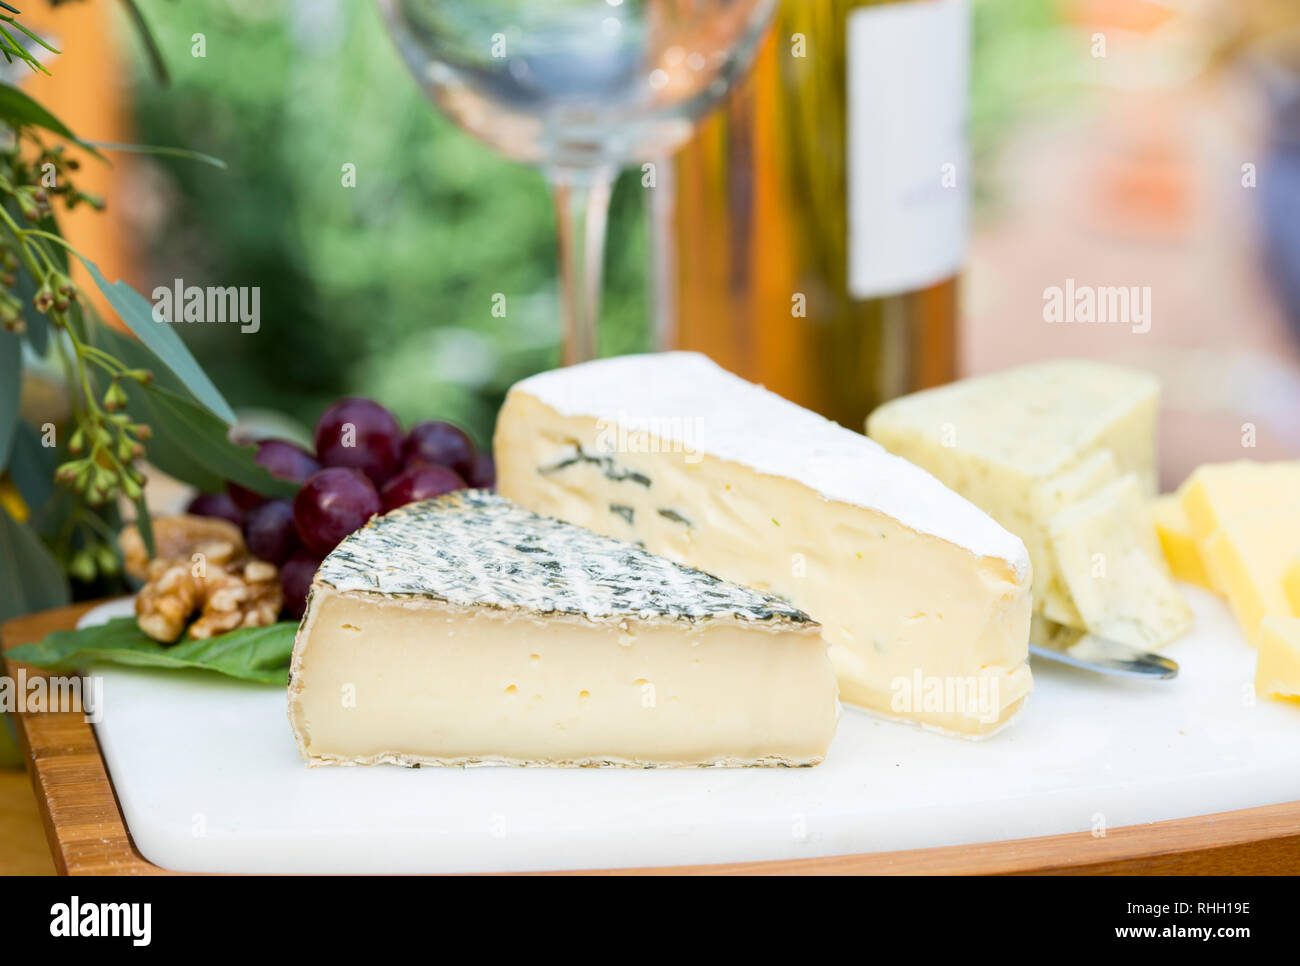 Three large wedges of cheese on marble cheese board- outdoor al fresco entertaining. - Stock Image